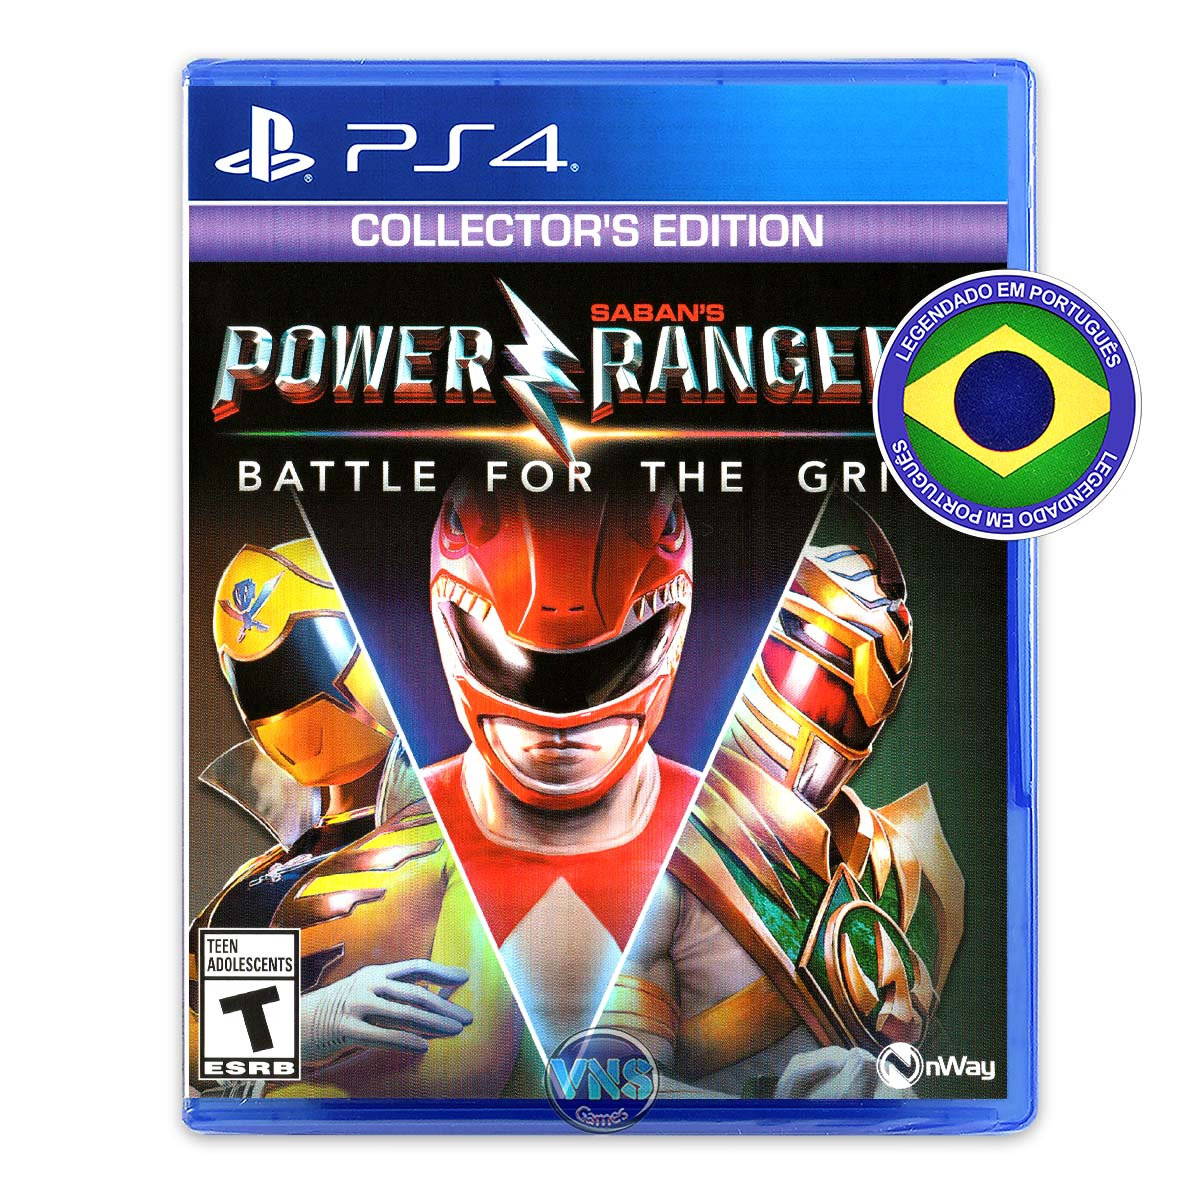 Power Rangers: Battle for the Grid - Collector's Edition - PS4